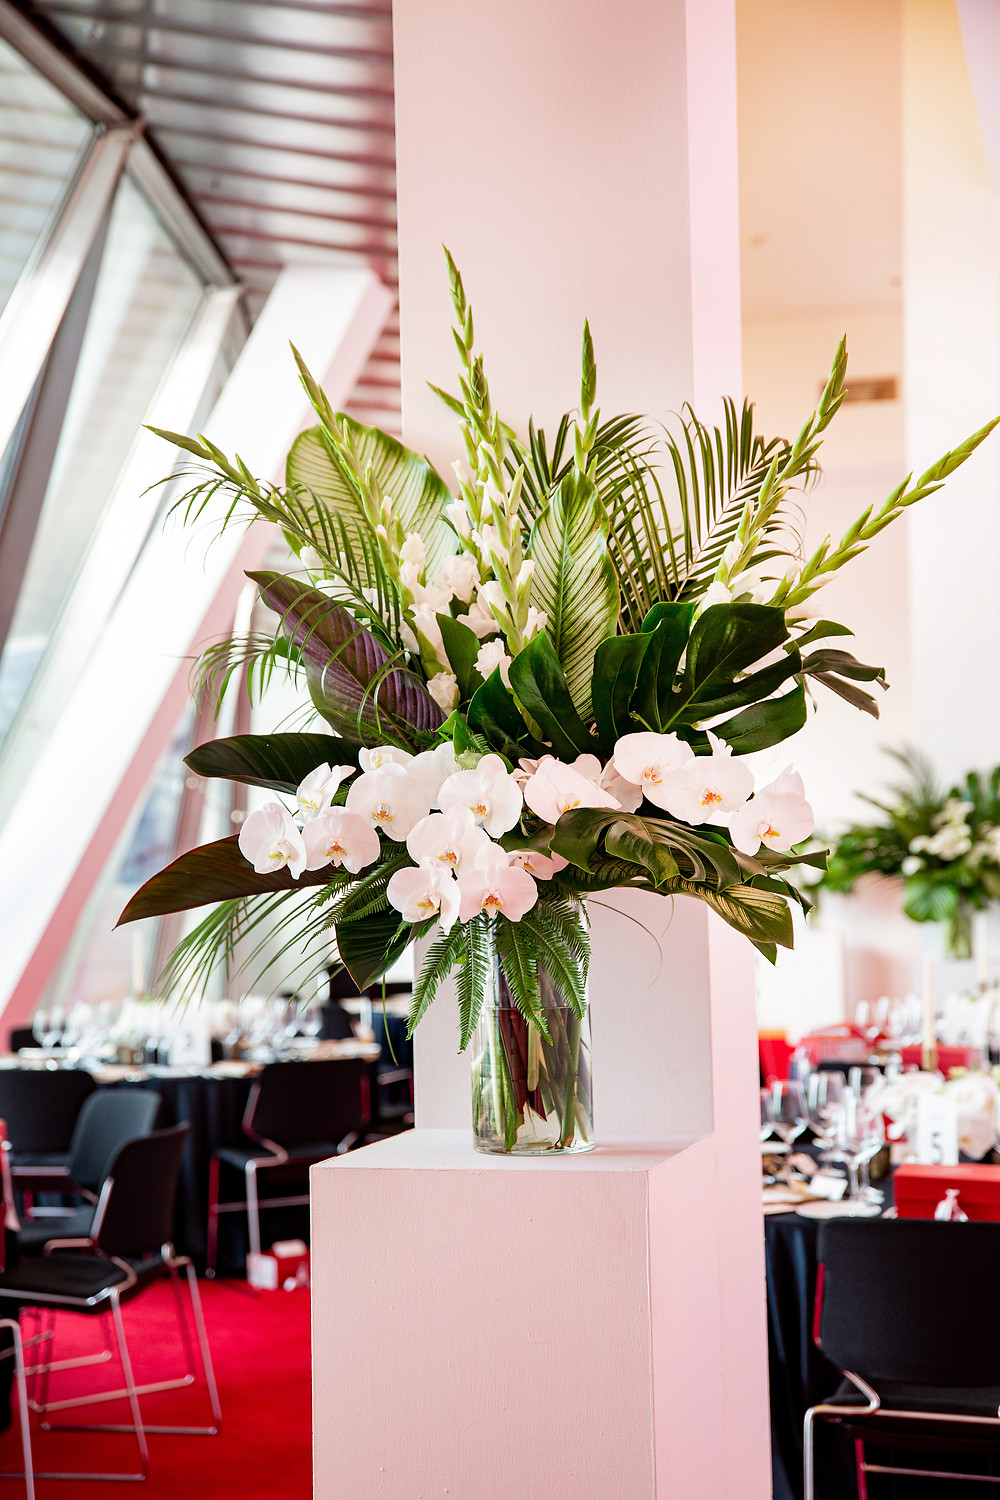 large floral arrangement with white flowers such as orchids and gladiolas